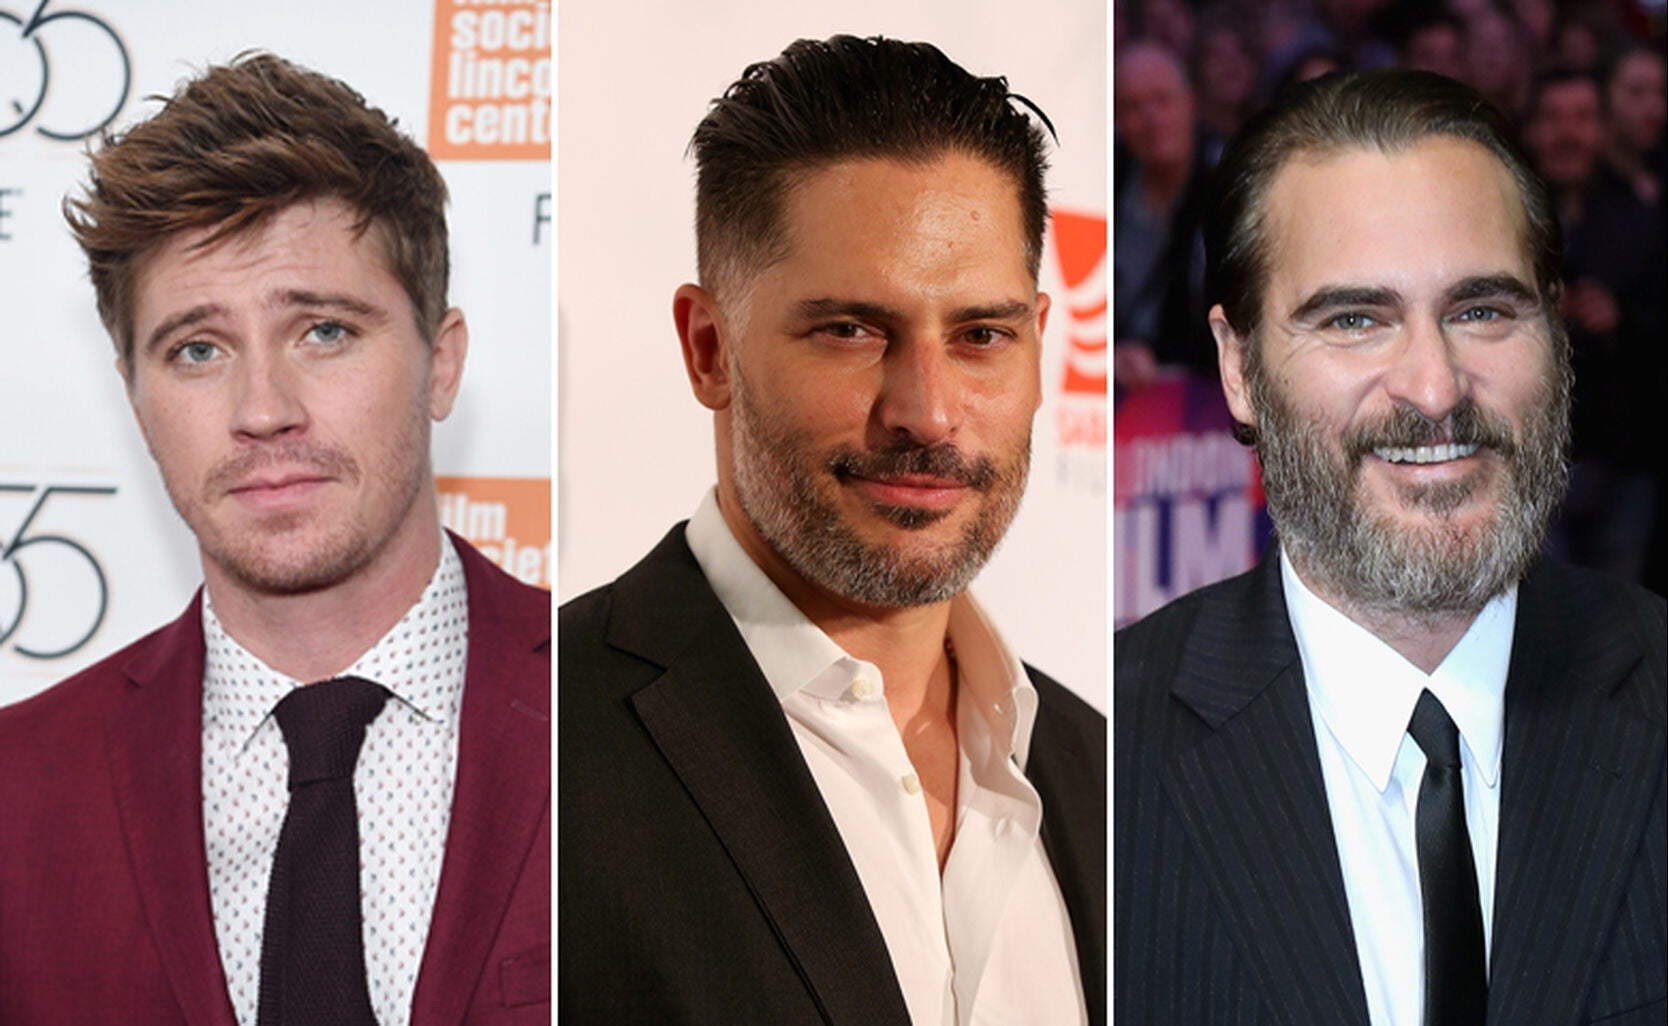 Garrett Hedlund, Joe Manganiello and Joaquin Phoenix